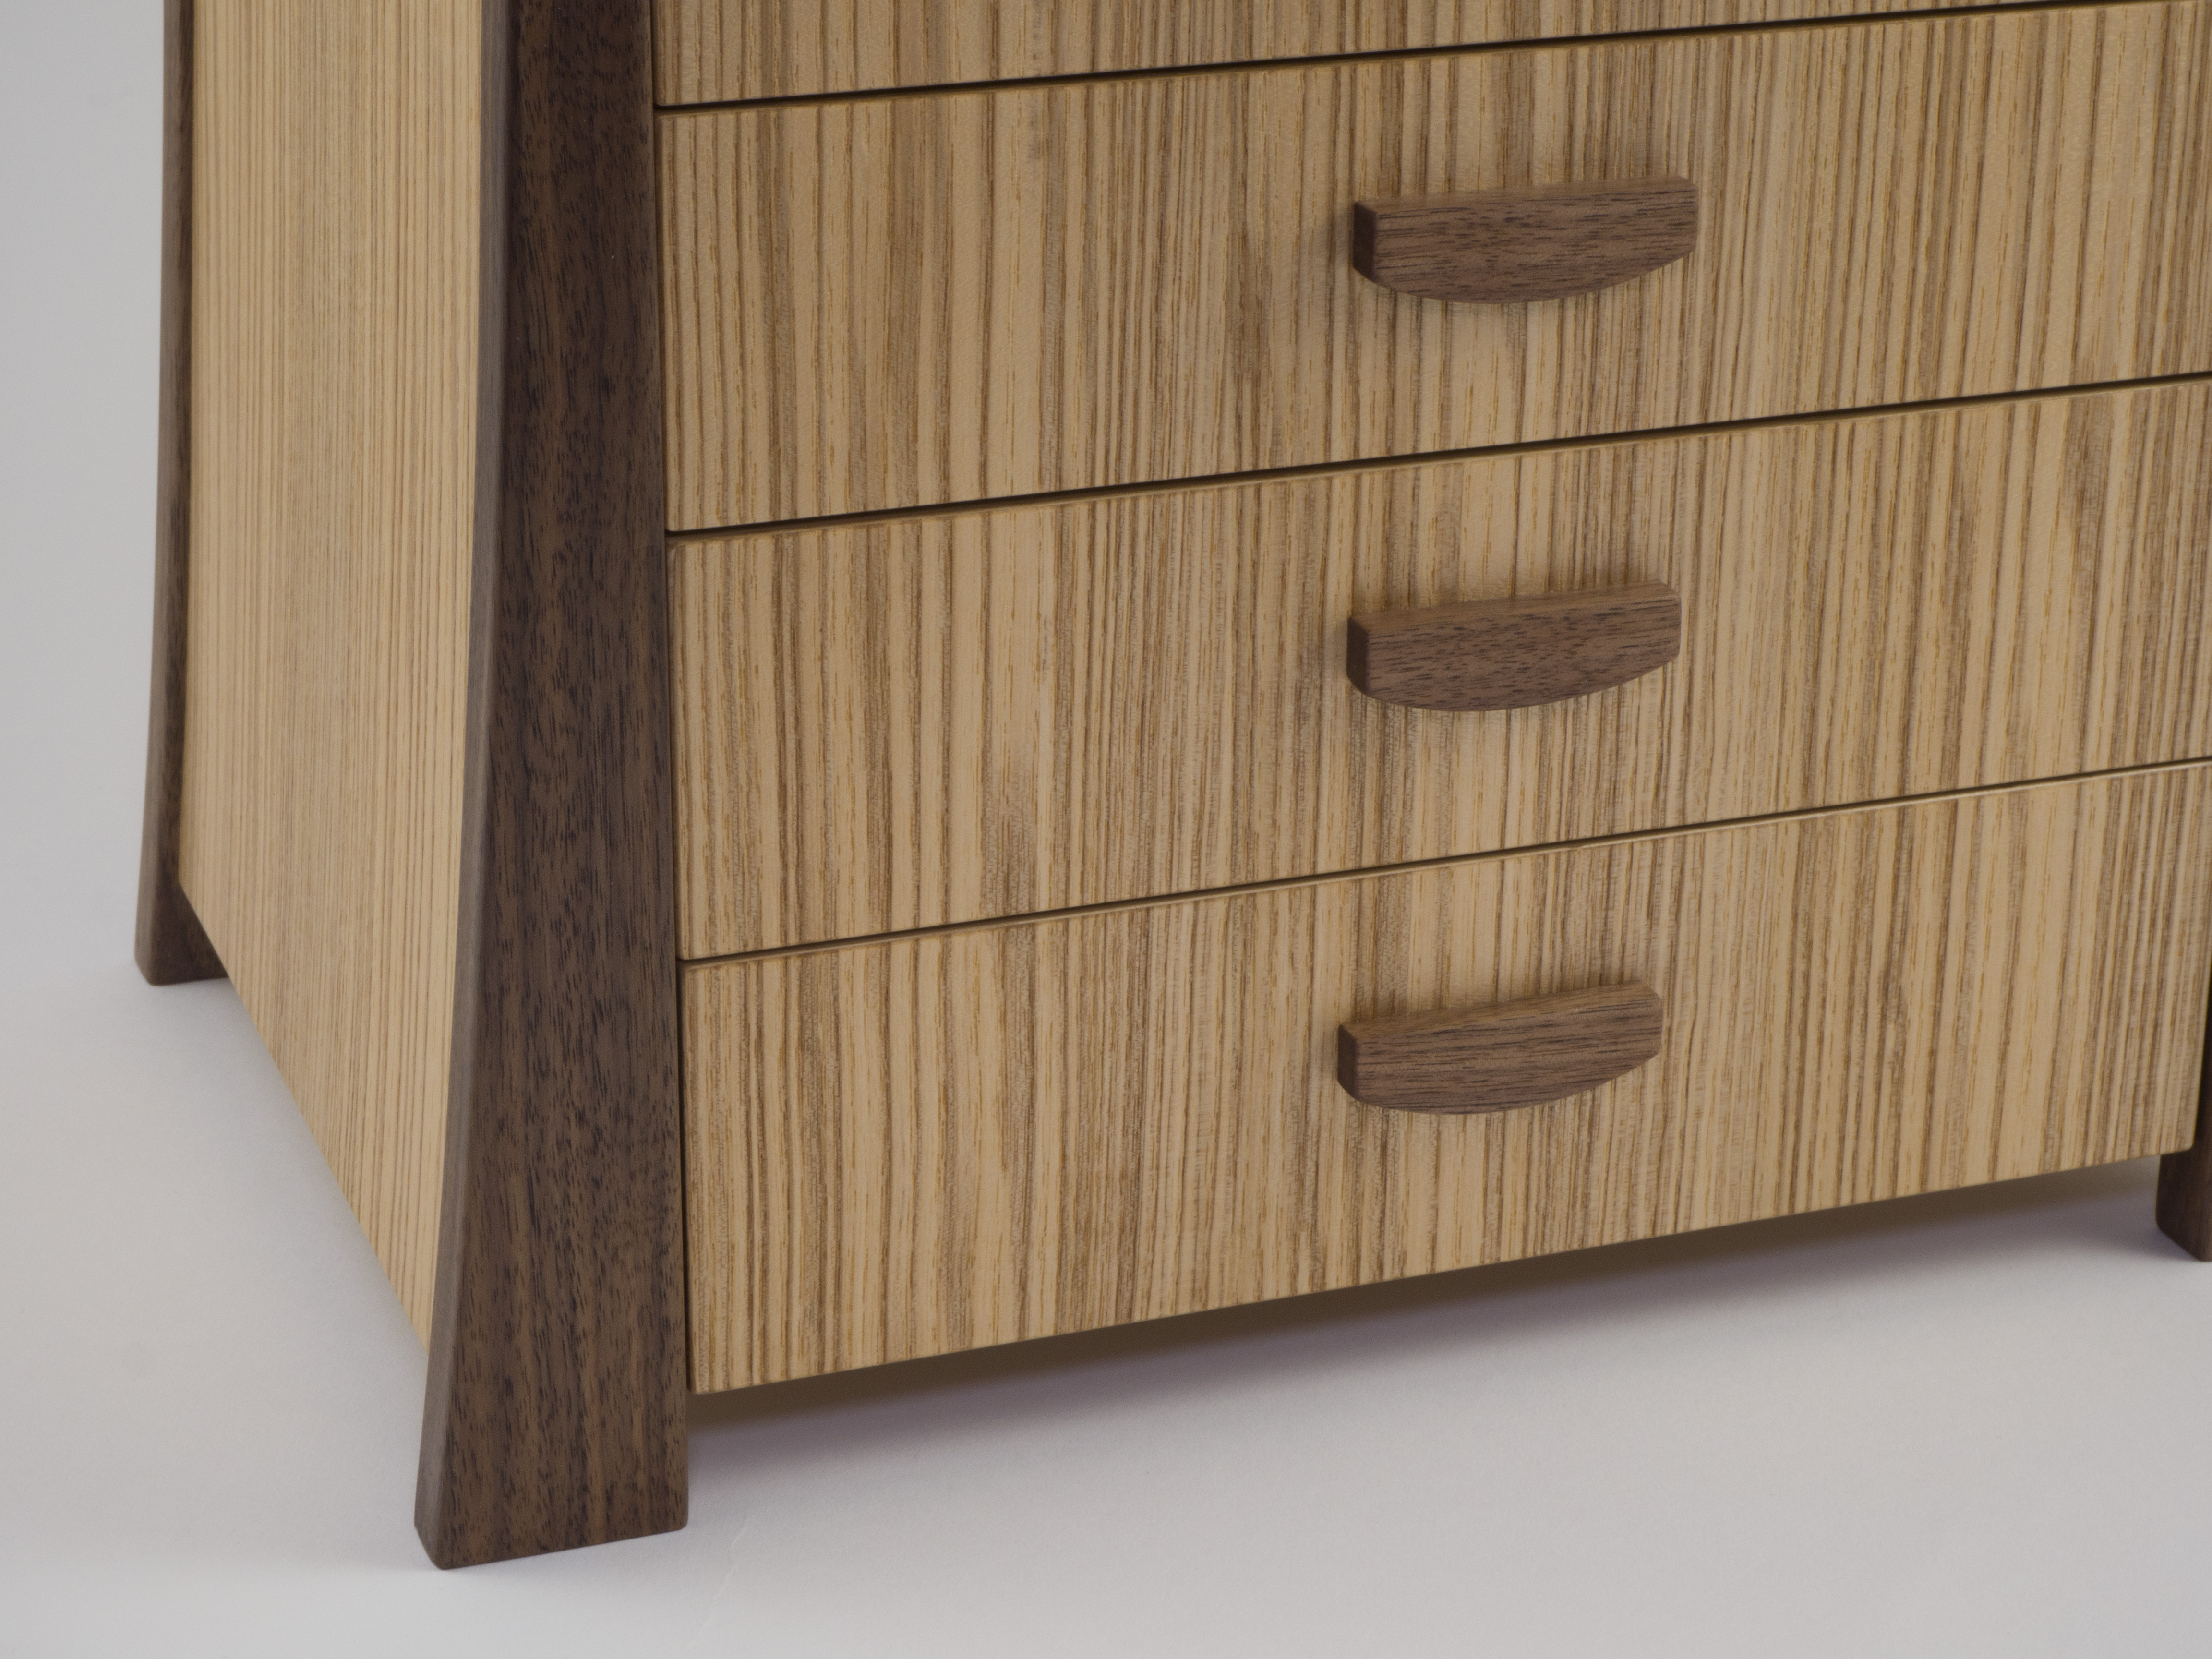 Olive ash chest of drawers